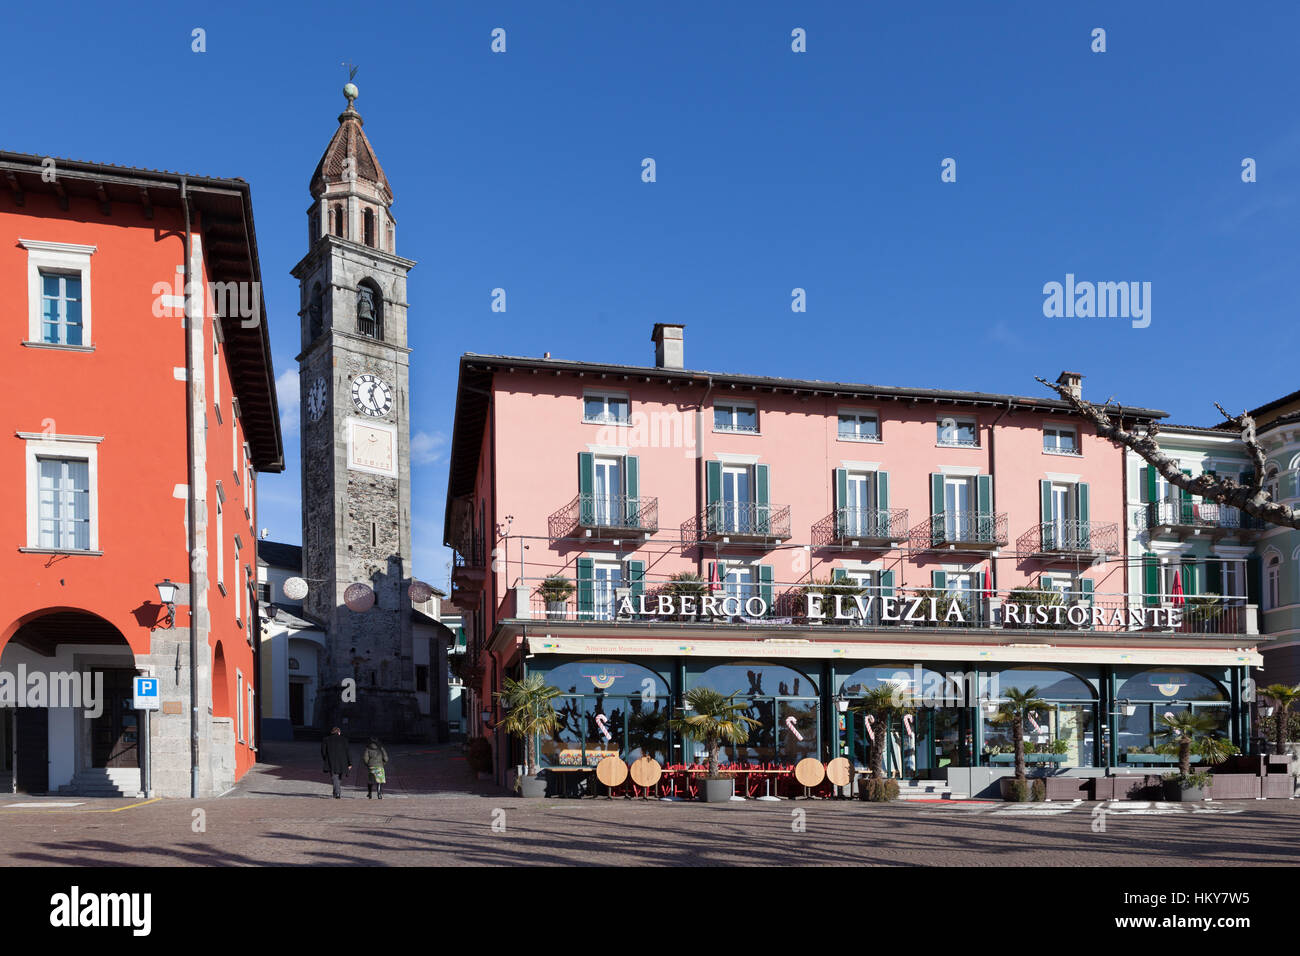 Lakefront with Chiesa Santi Pietro e Paolo (St. Peter and Paul Church). Ascona, Switzerland - Stock Image